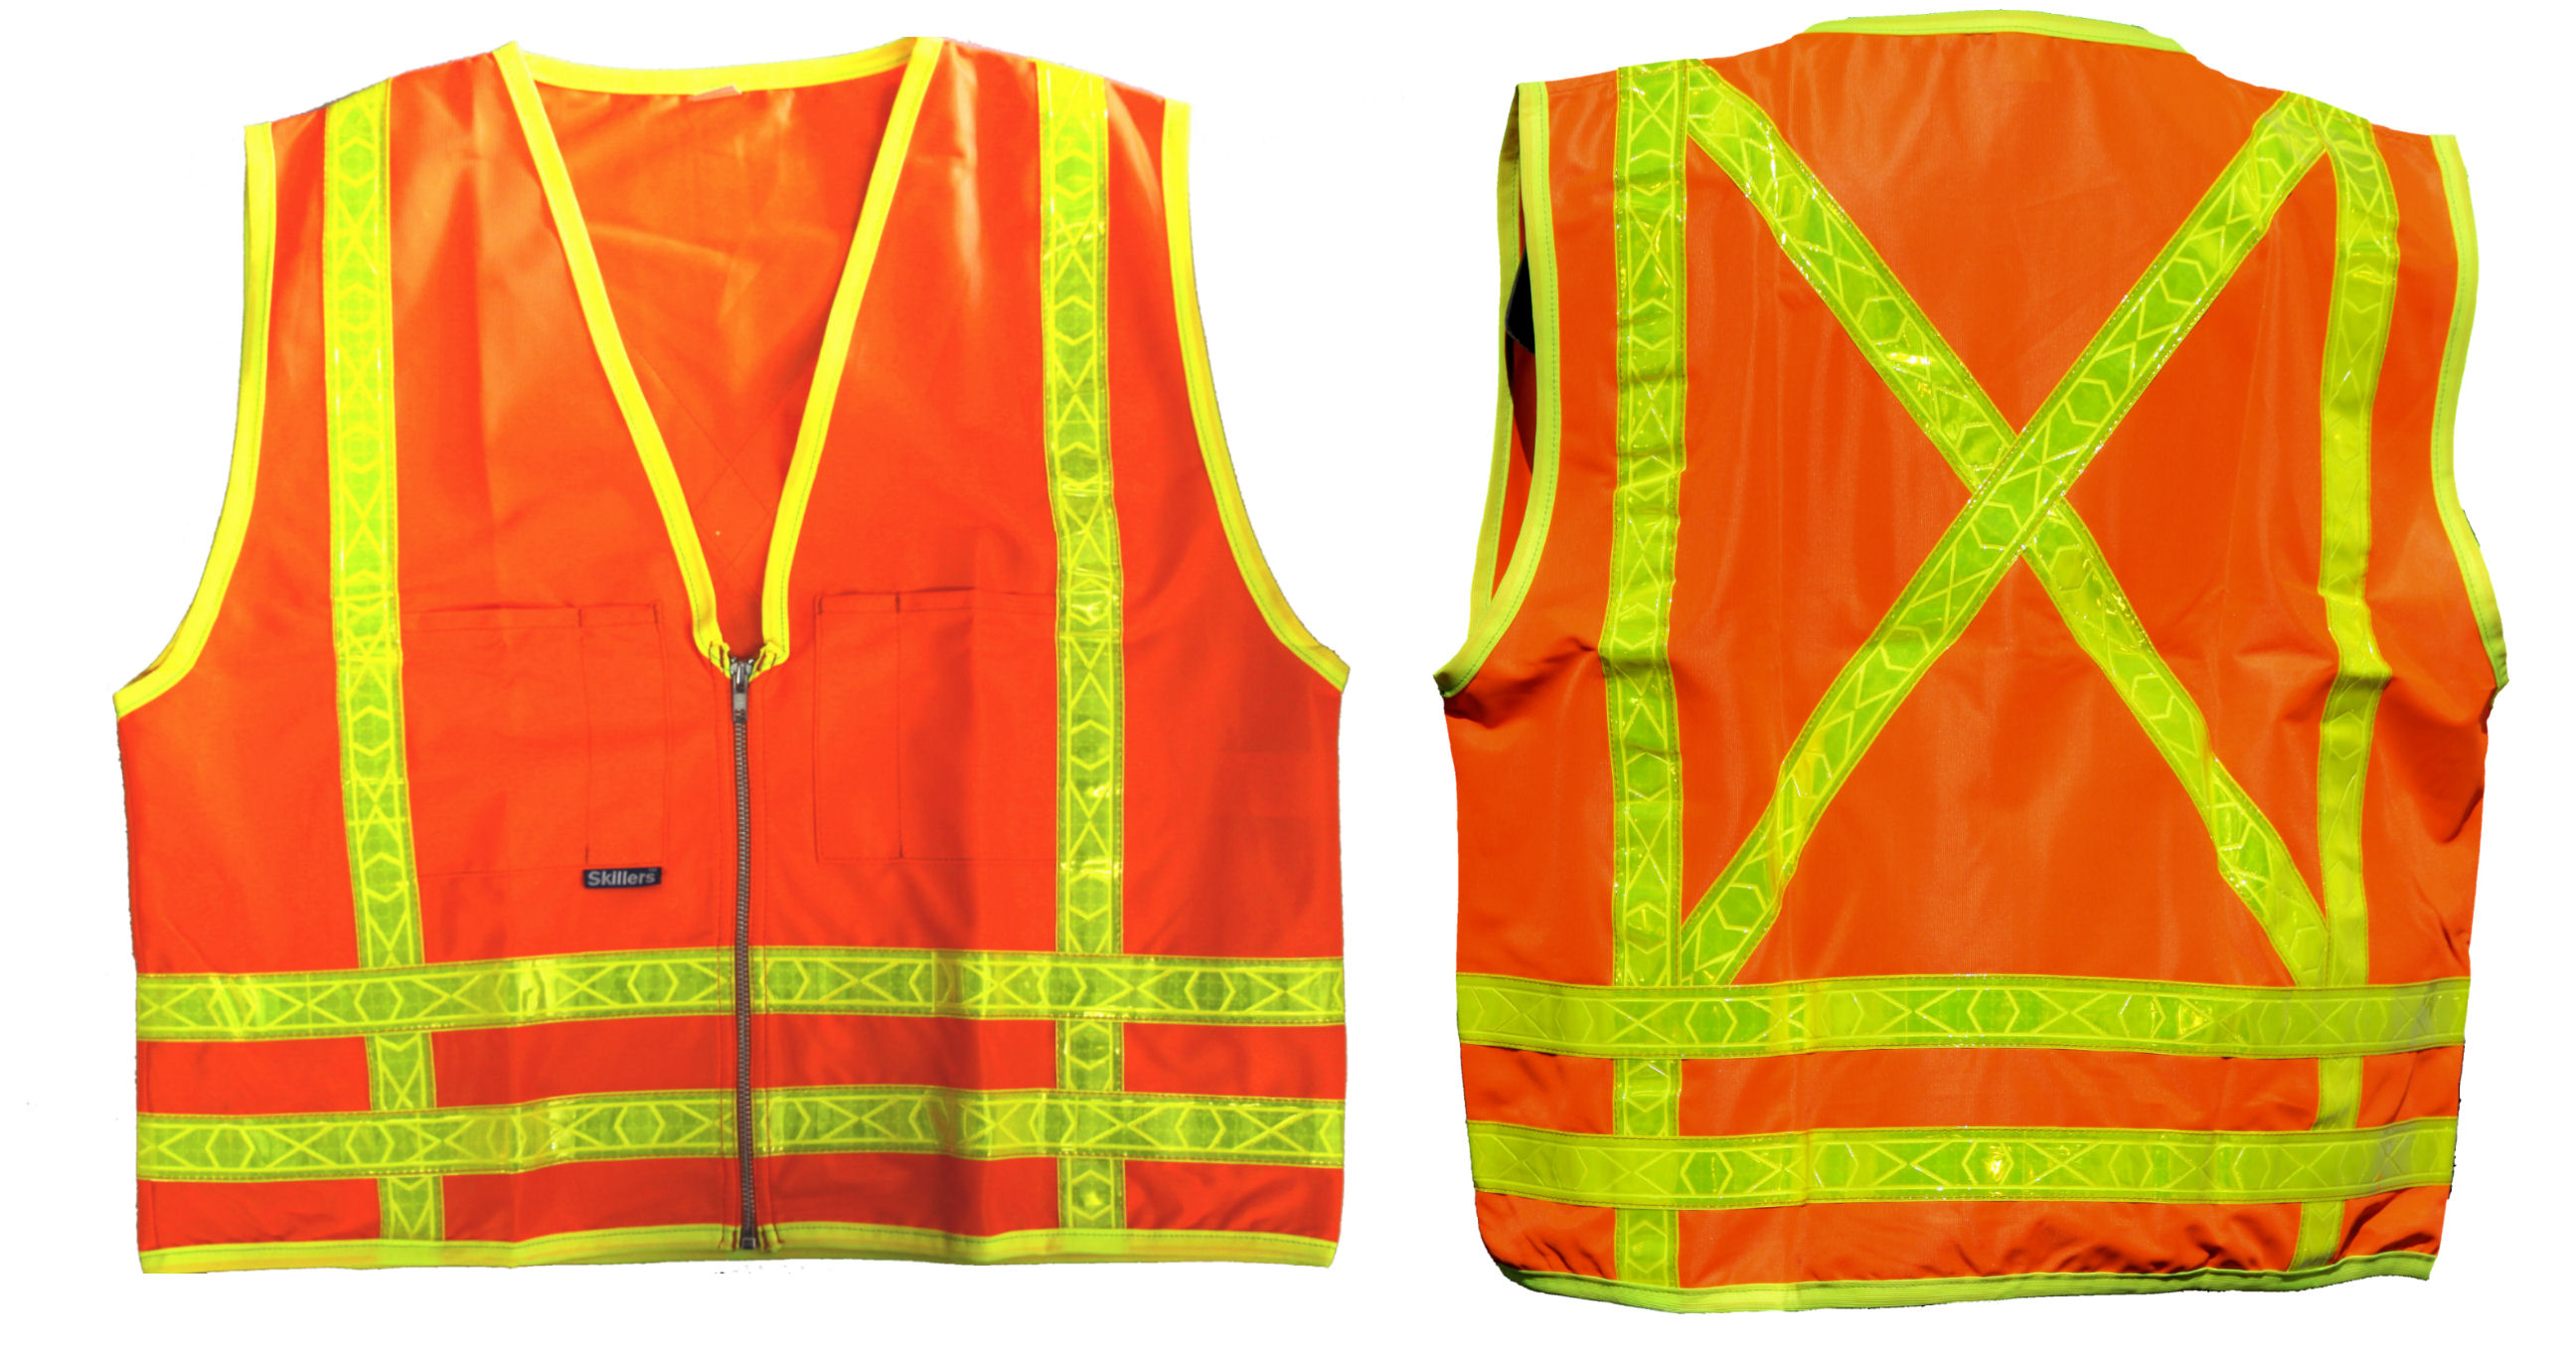 Skillers High Visibility Safety Vest With X on the Back